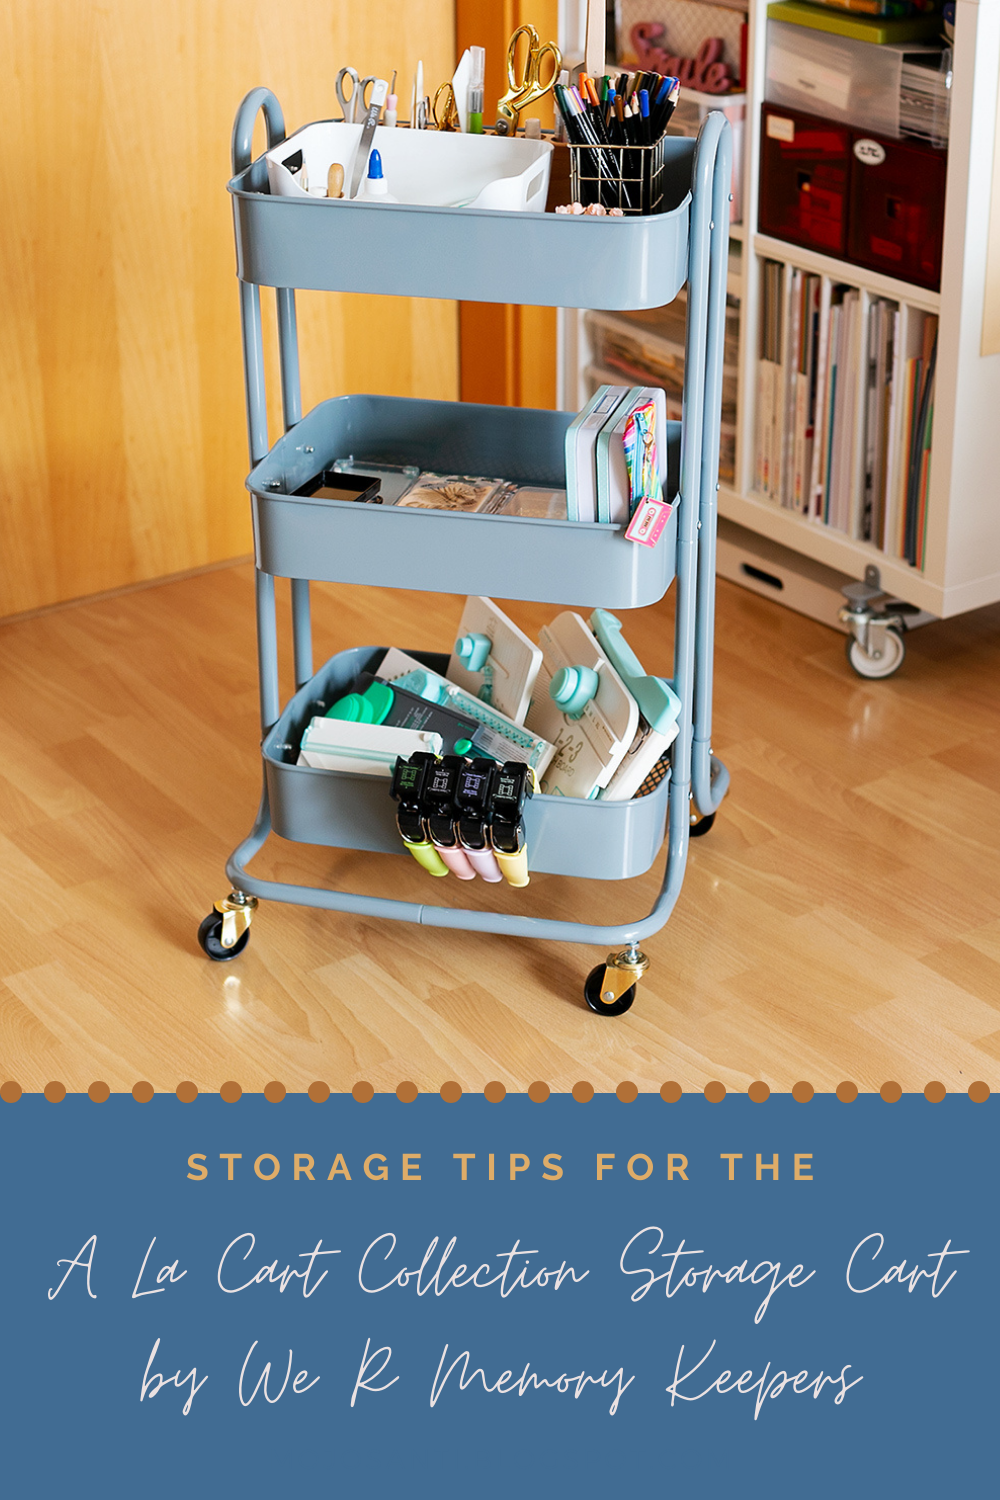 Storage Cart by WRMK with Tips for styling your cart